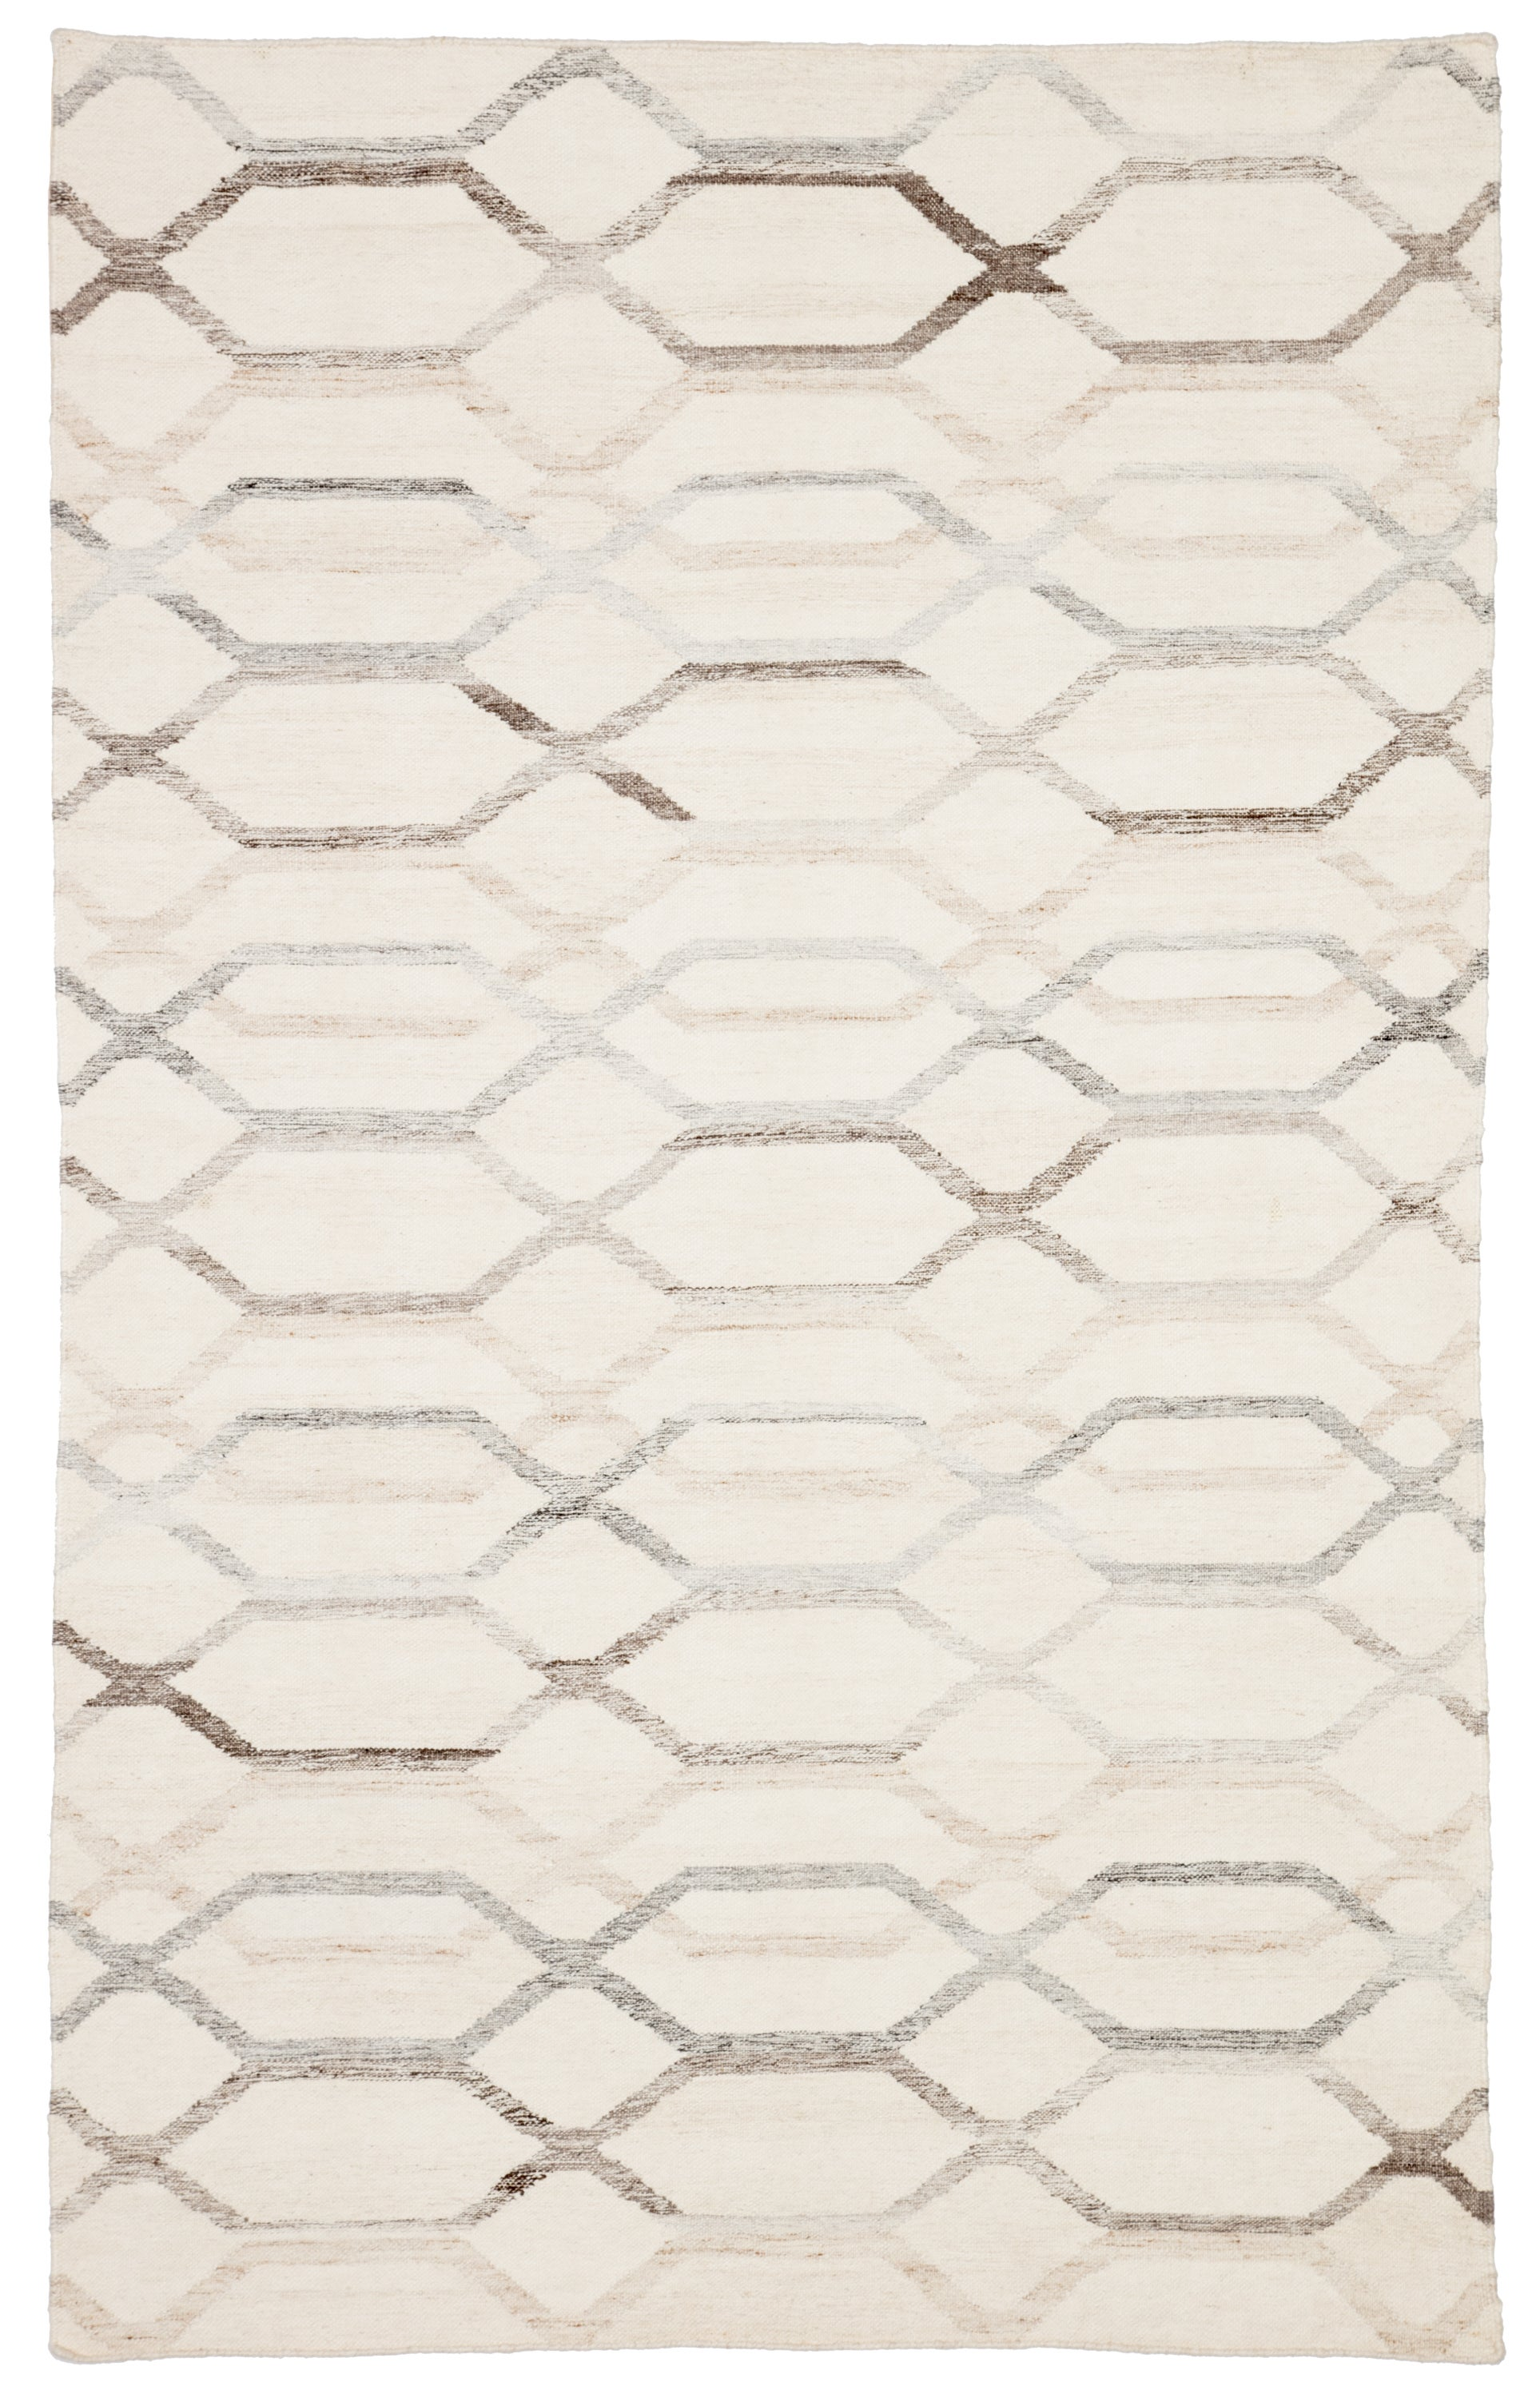 Rectangle Cream Trellis Dhurrie Blends Contemporary recommended for Bedroom, Bathroom, Dining Room, Office, Hallway, Living Room